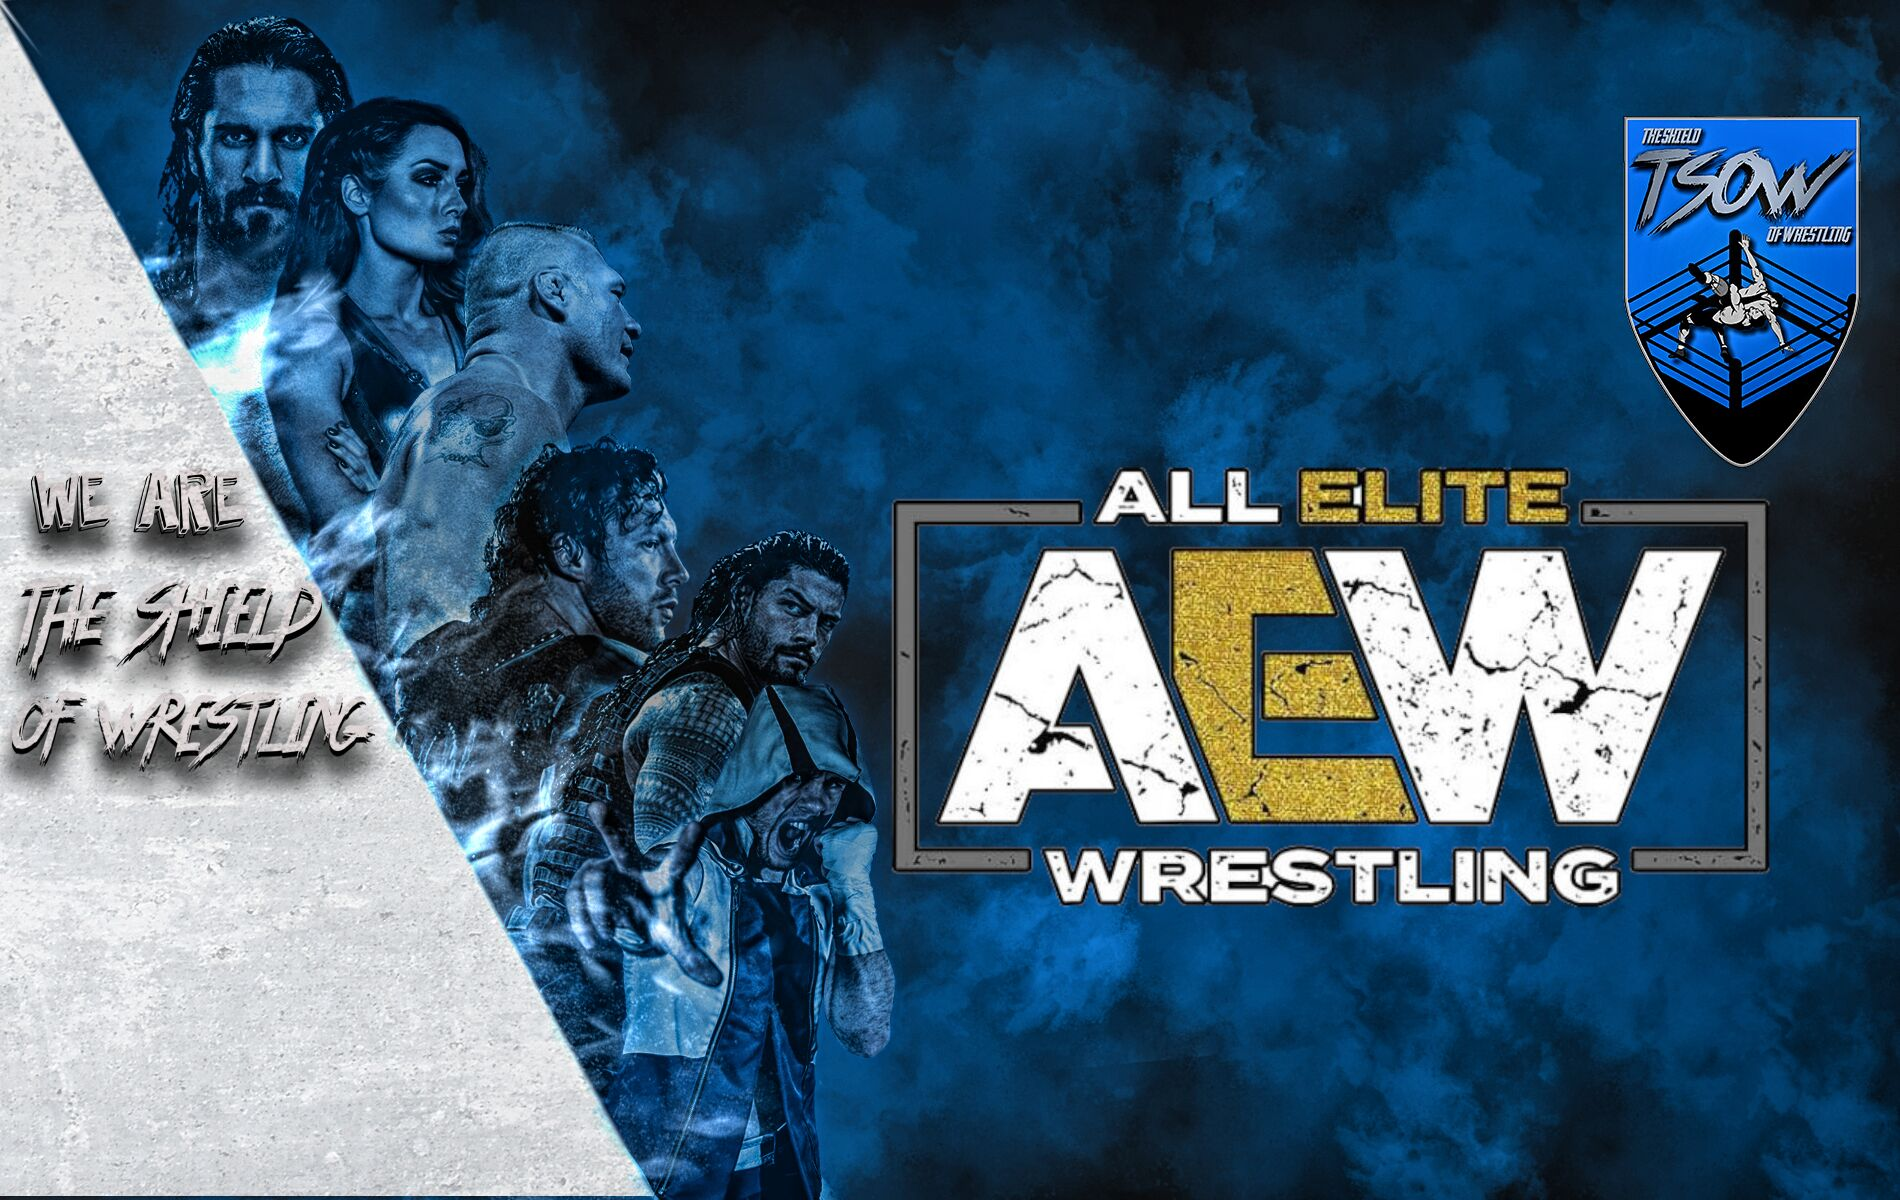 All Elite Wrestling Dynamite - AEW